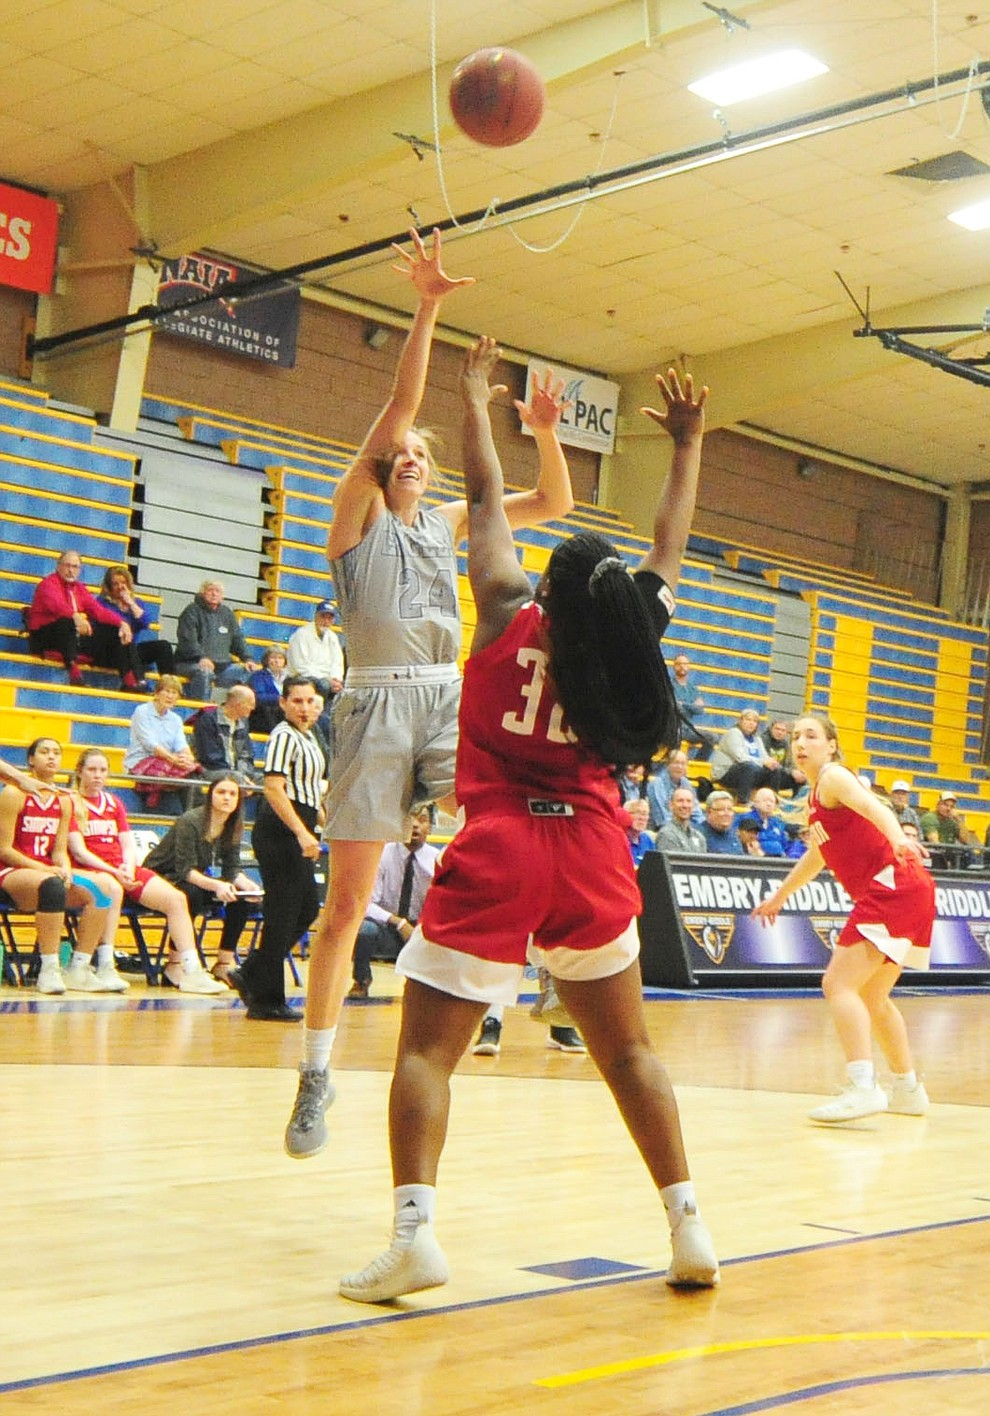 Embry Riddle's Melissa Pfeifer goes up high for two-points as the Eagles take on the Simpson University Redhawks Thursday, Jan. 31, 2019 in Prescott. (Les Stukenberg/Courier).